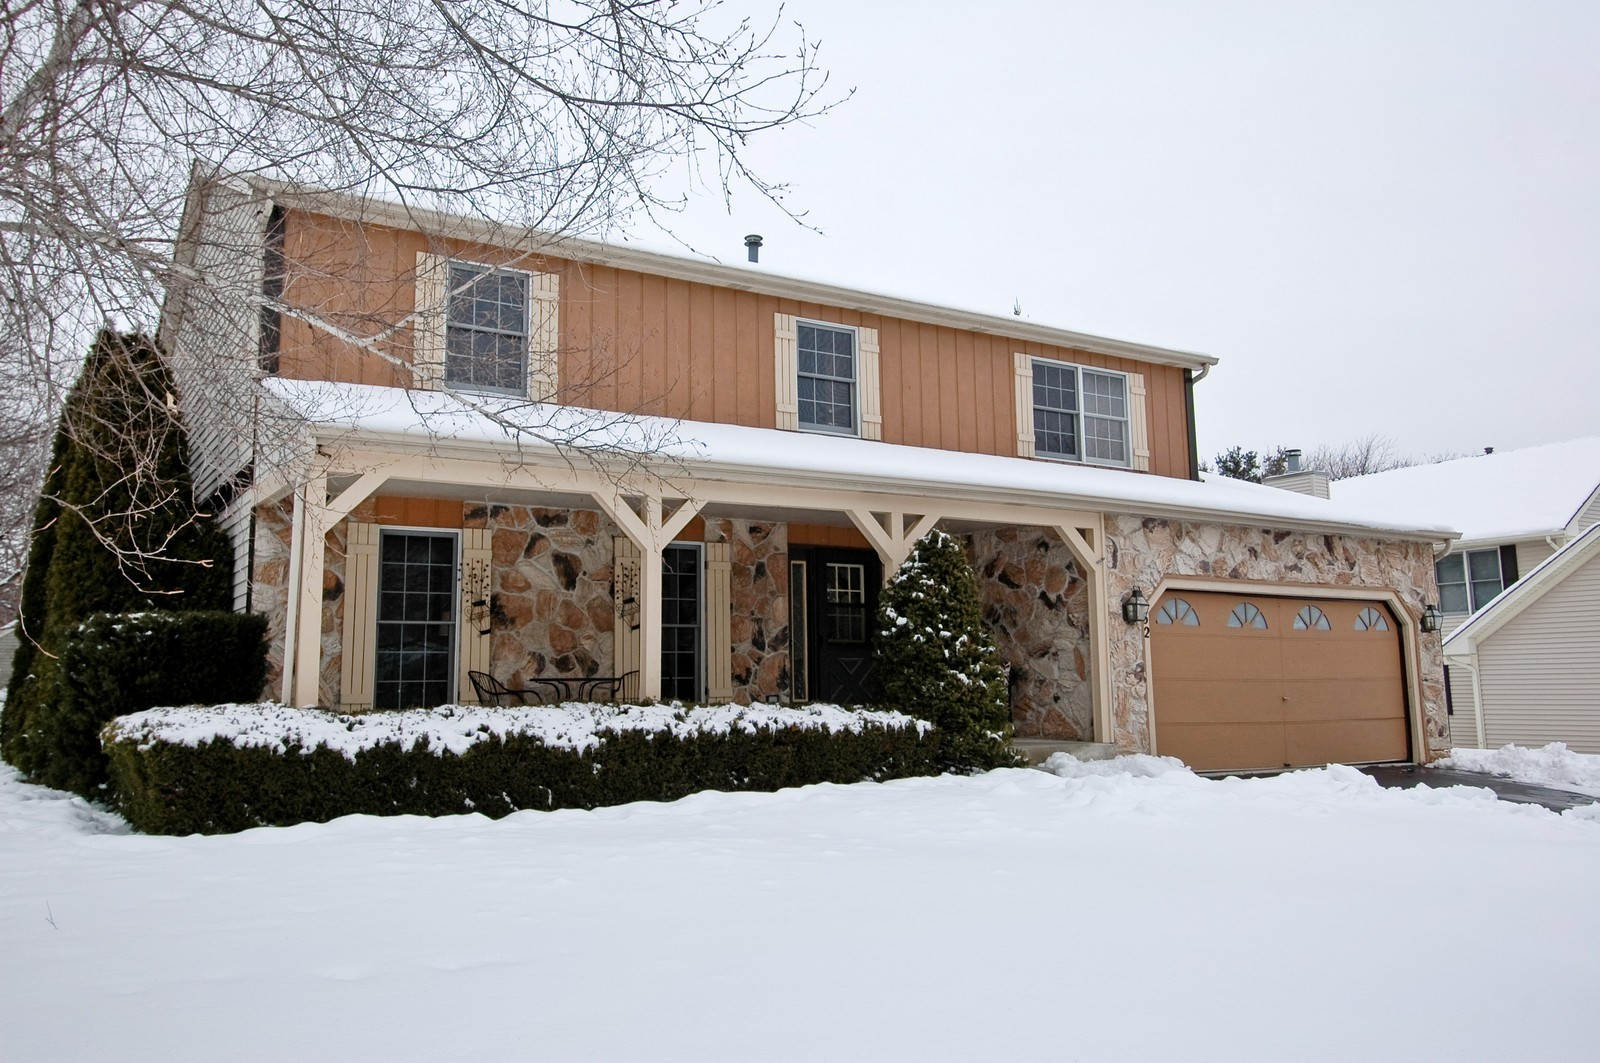 Real Estate Photography - 62 Crystal Ridge Dr, Crystal Lake, IL, 60012 - Front View